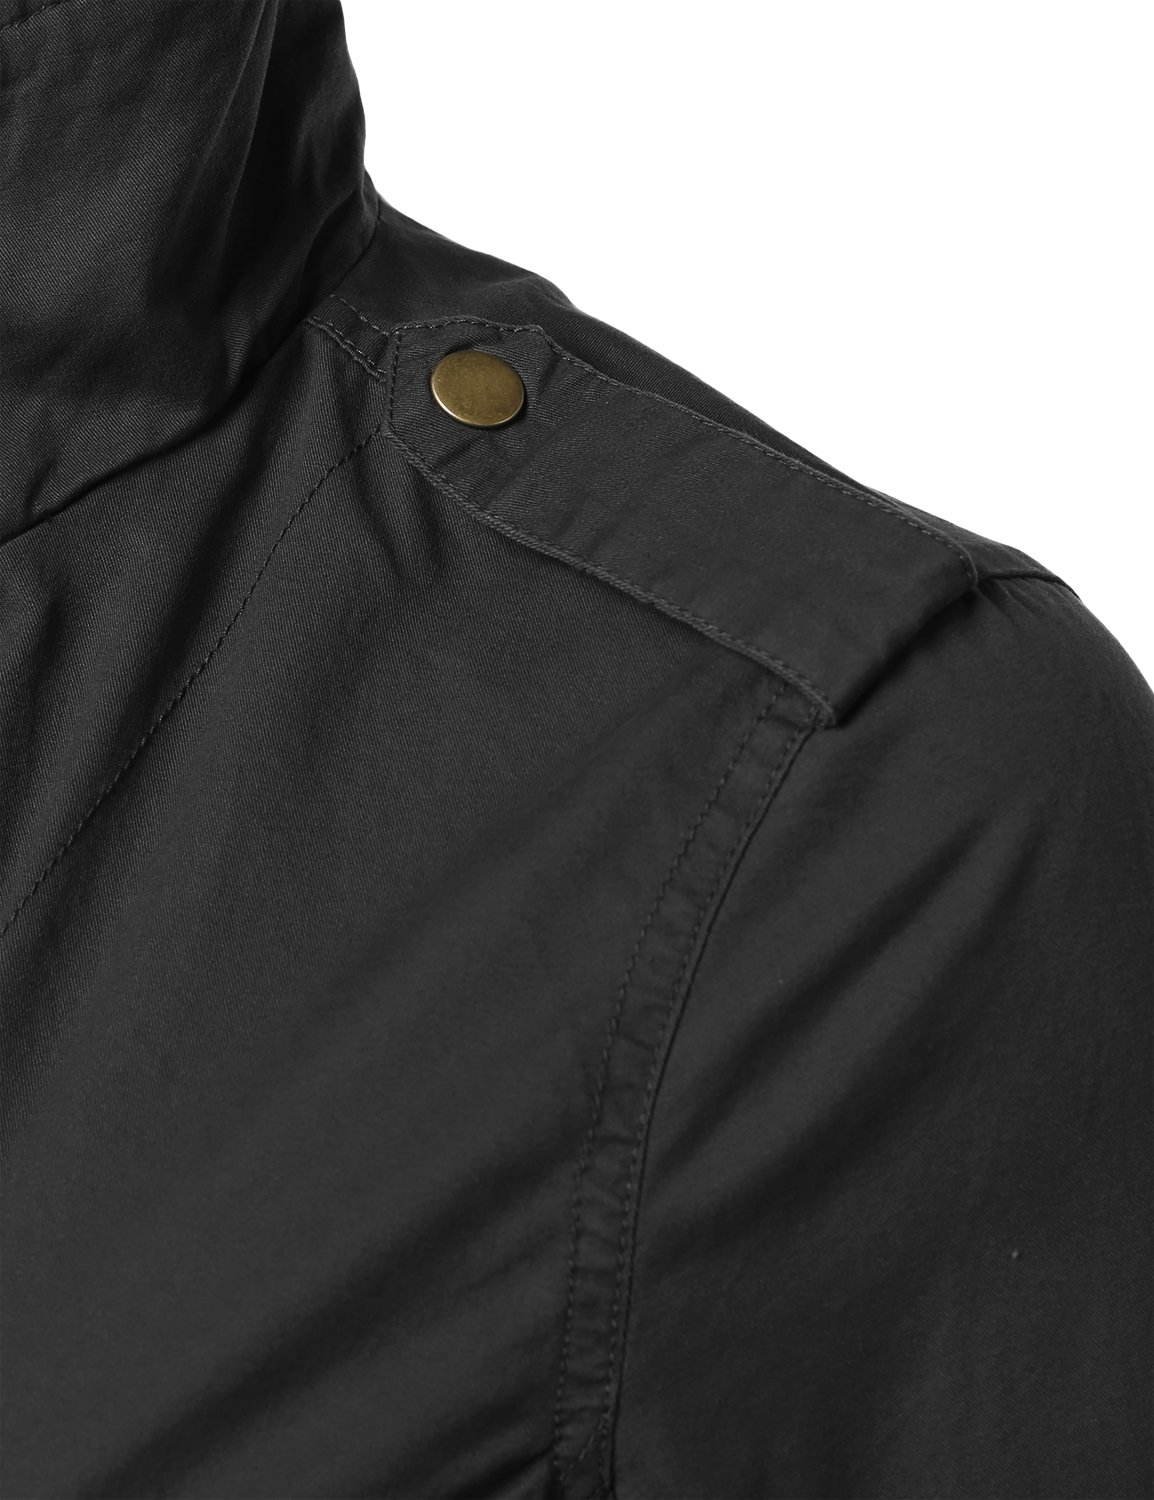 Made by Emma Military Style Zipper Snap Button Closure Jacket Black L by Made by Emma (Image #4)